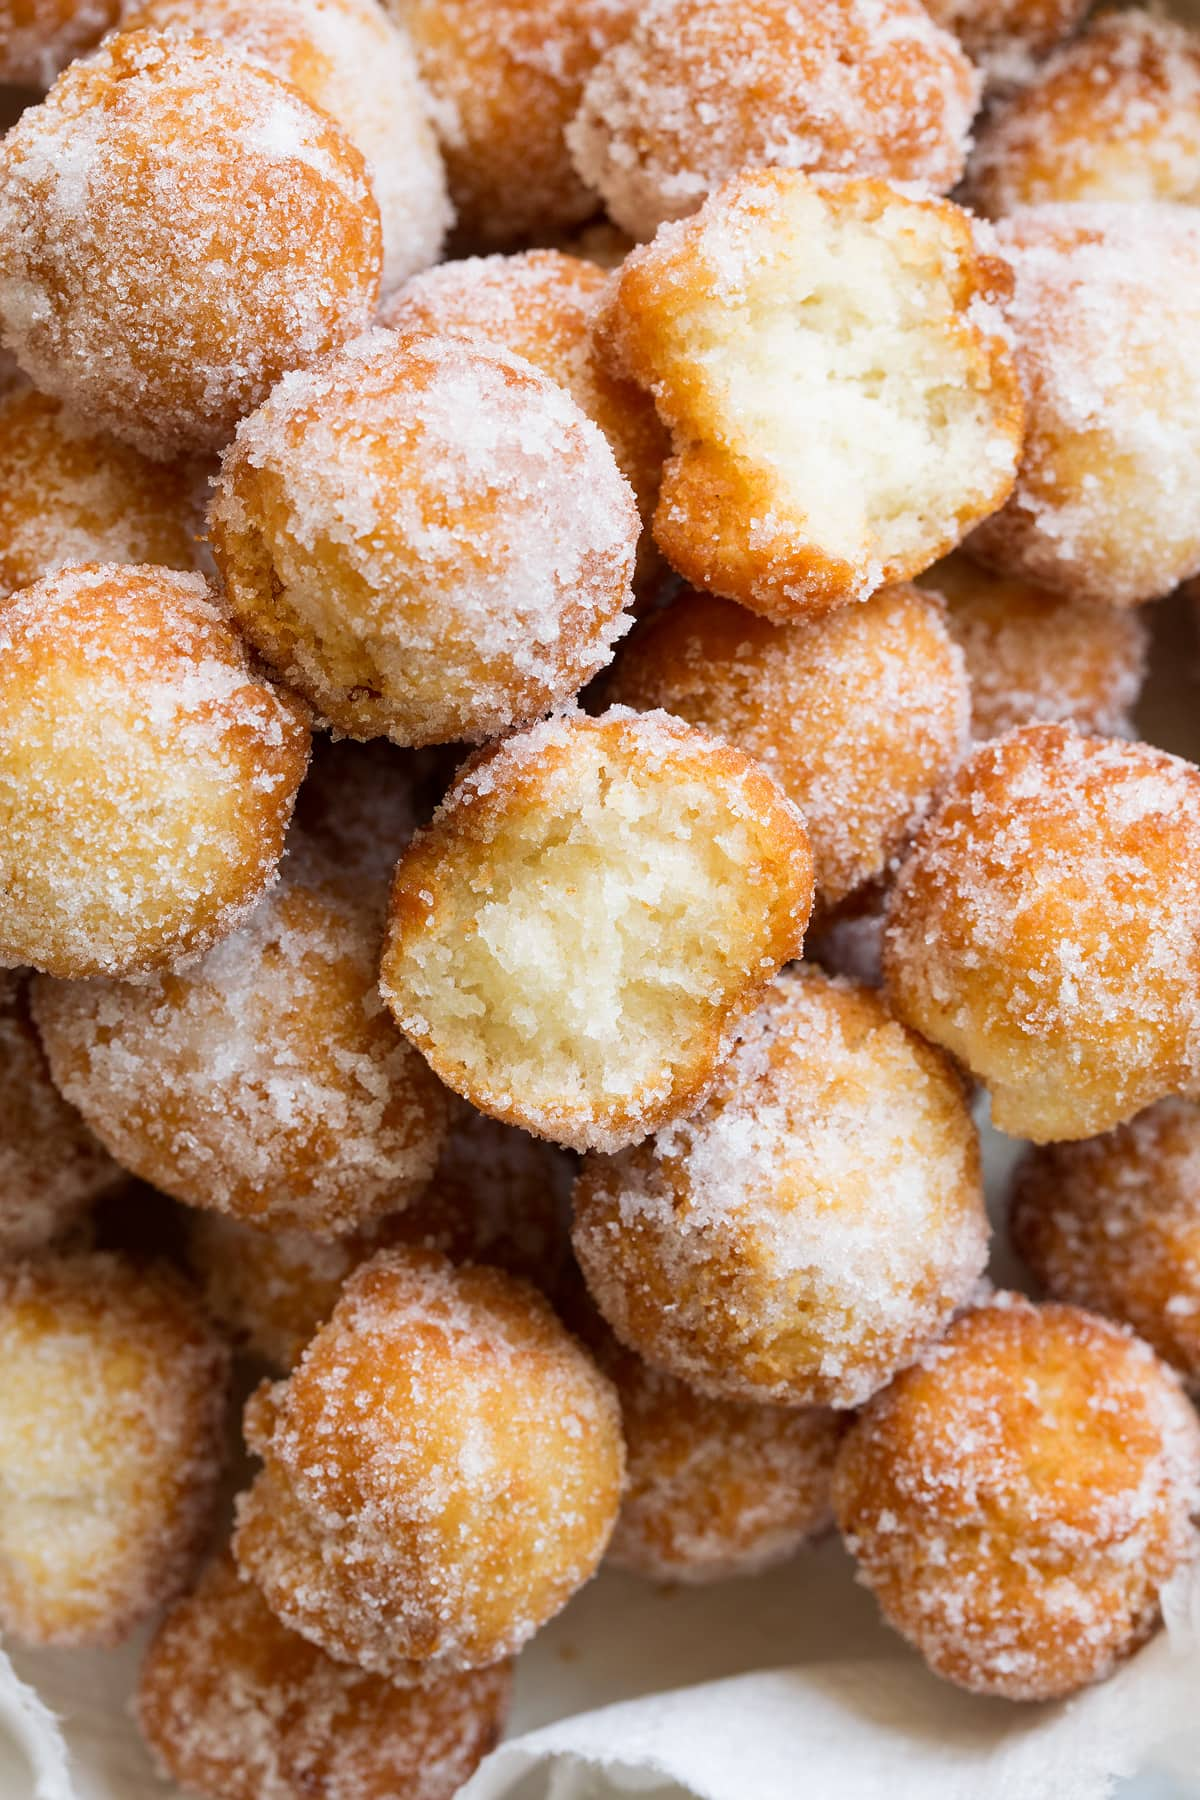 Close up image of donut holes coated in cinnamon sugar.